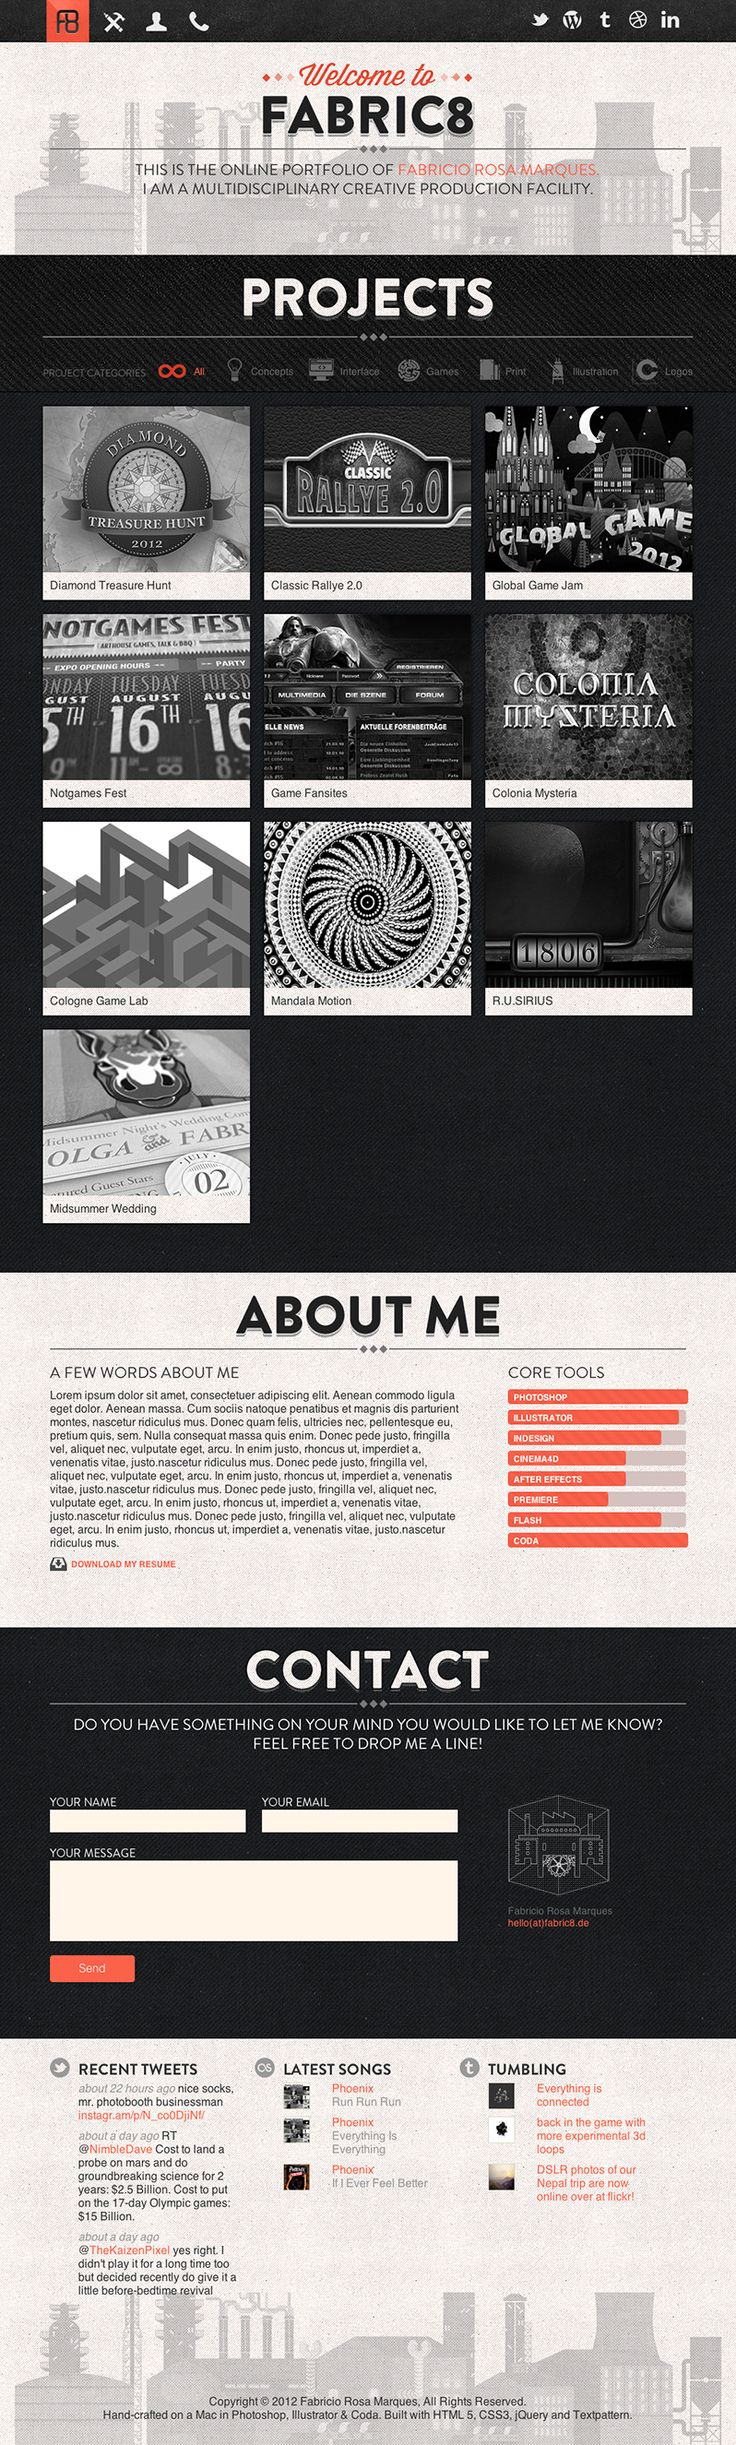 15 Stylish Examples of Portfolio Web Design